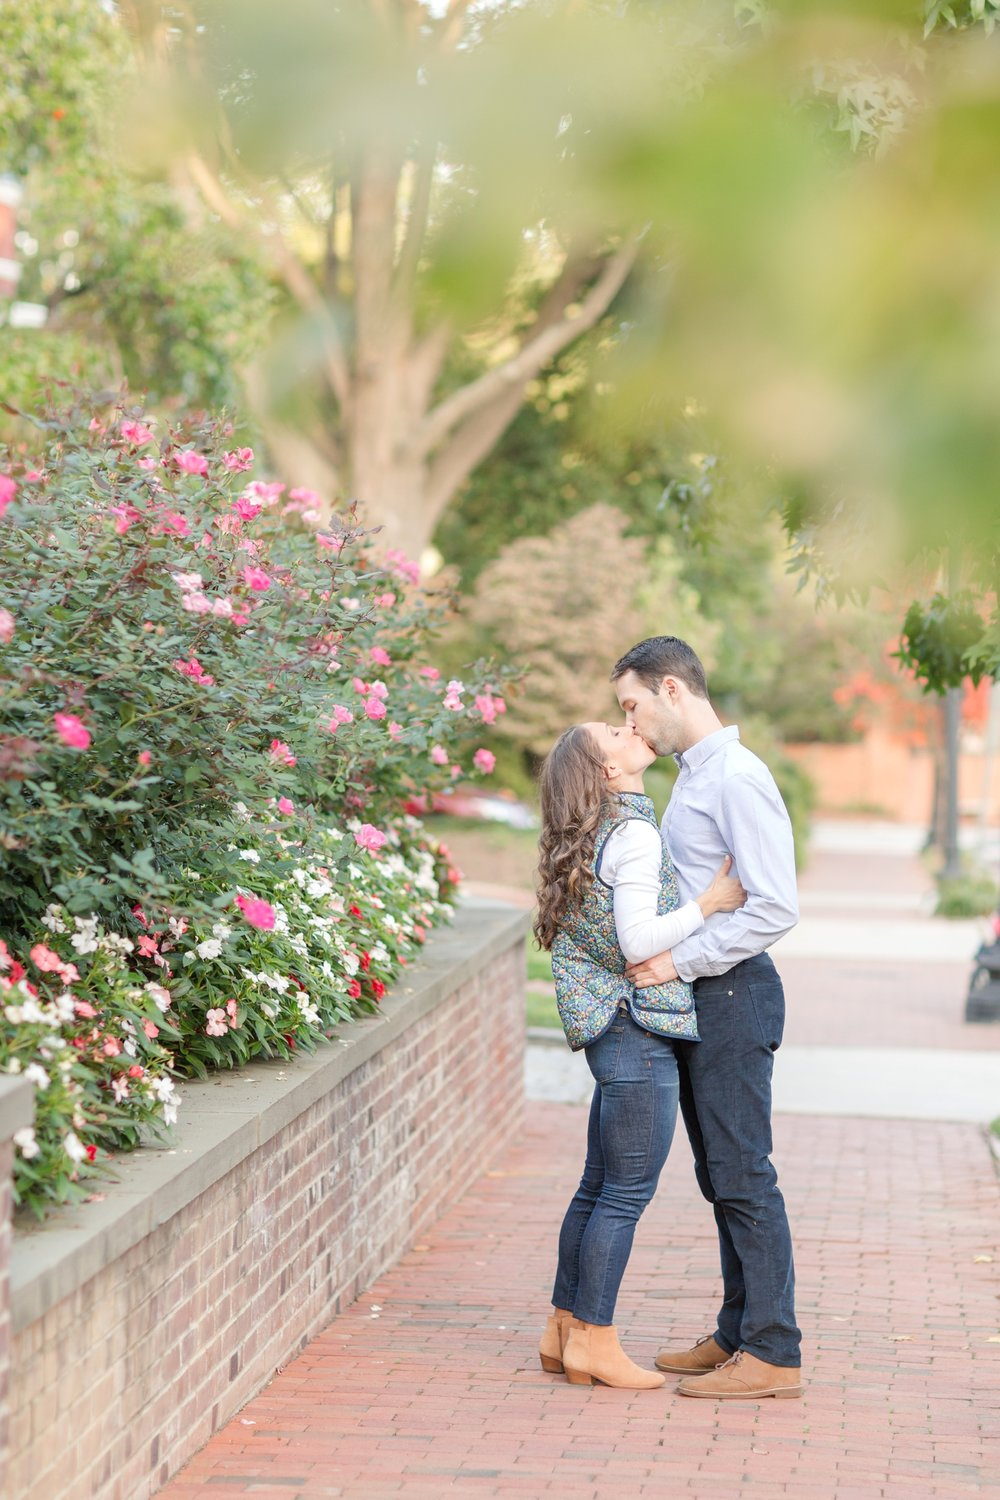 Emily Schroeder & Brian Malat Engagement-182_Georgetown-DC-engagement-virginia-engagement-photographer-anna-grace-photography-photo.jpg